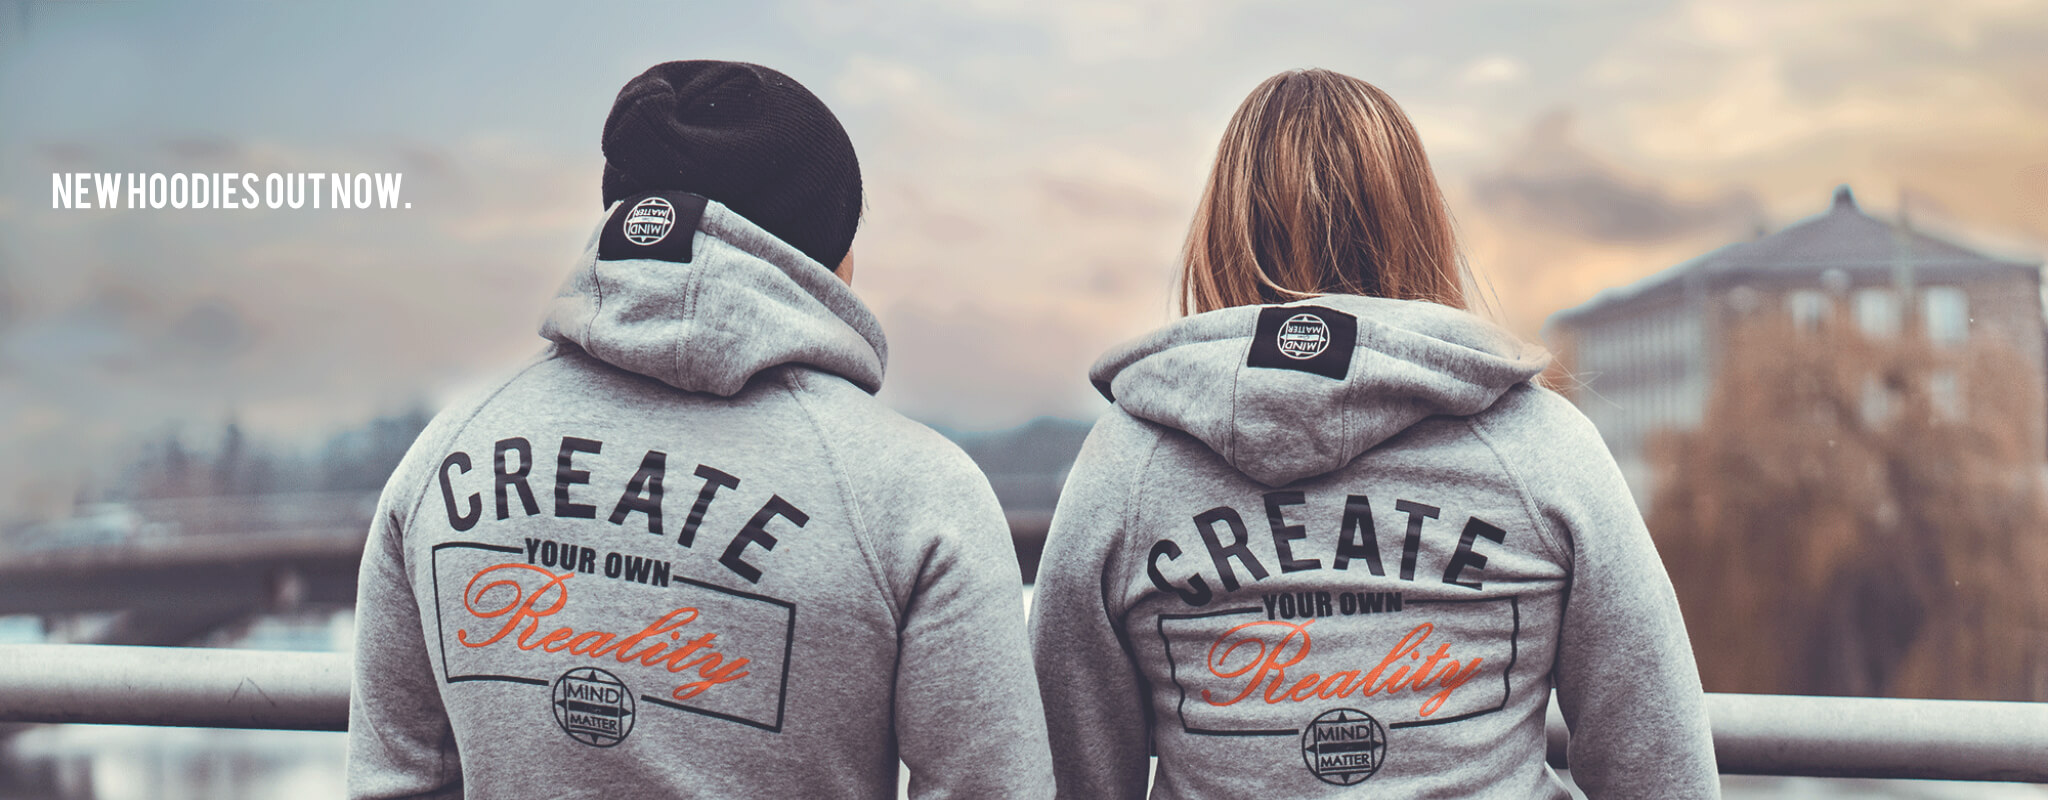 MIND OVER MATTER create your own reality hoodie. - Banner